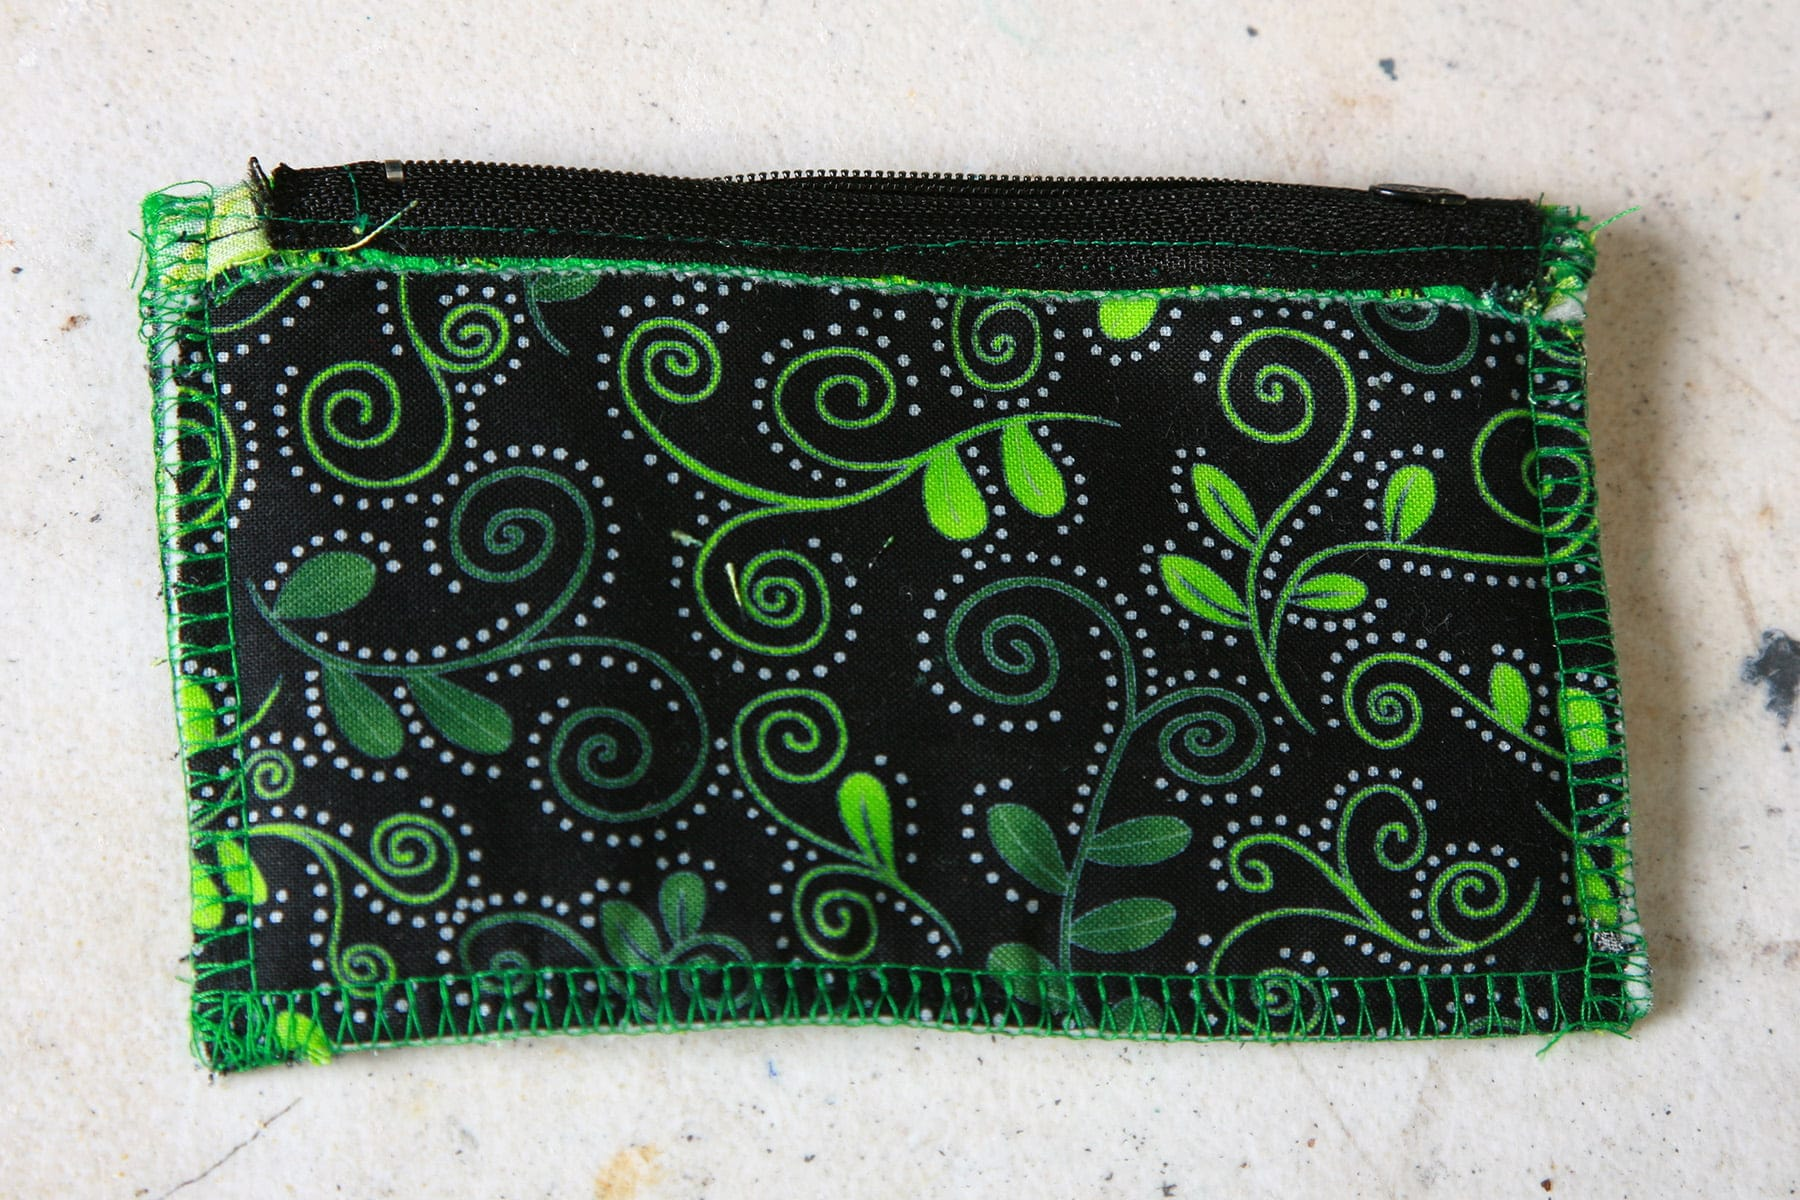 The finished coin purse is shown inside out, The lining fabric - black with thin green swirls - is what's showing.